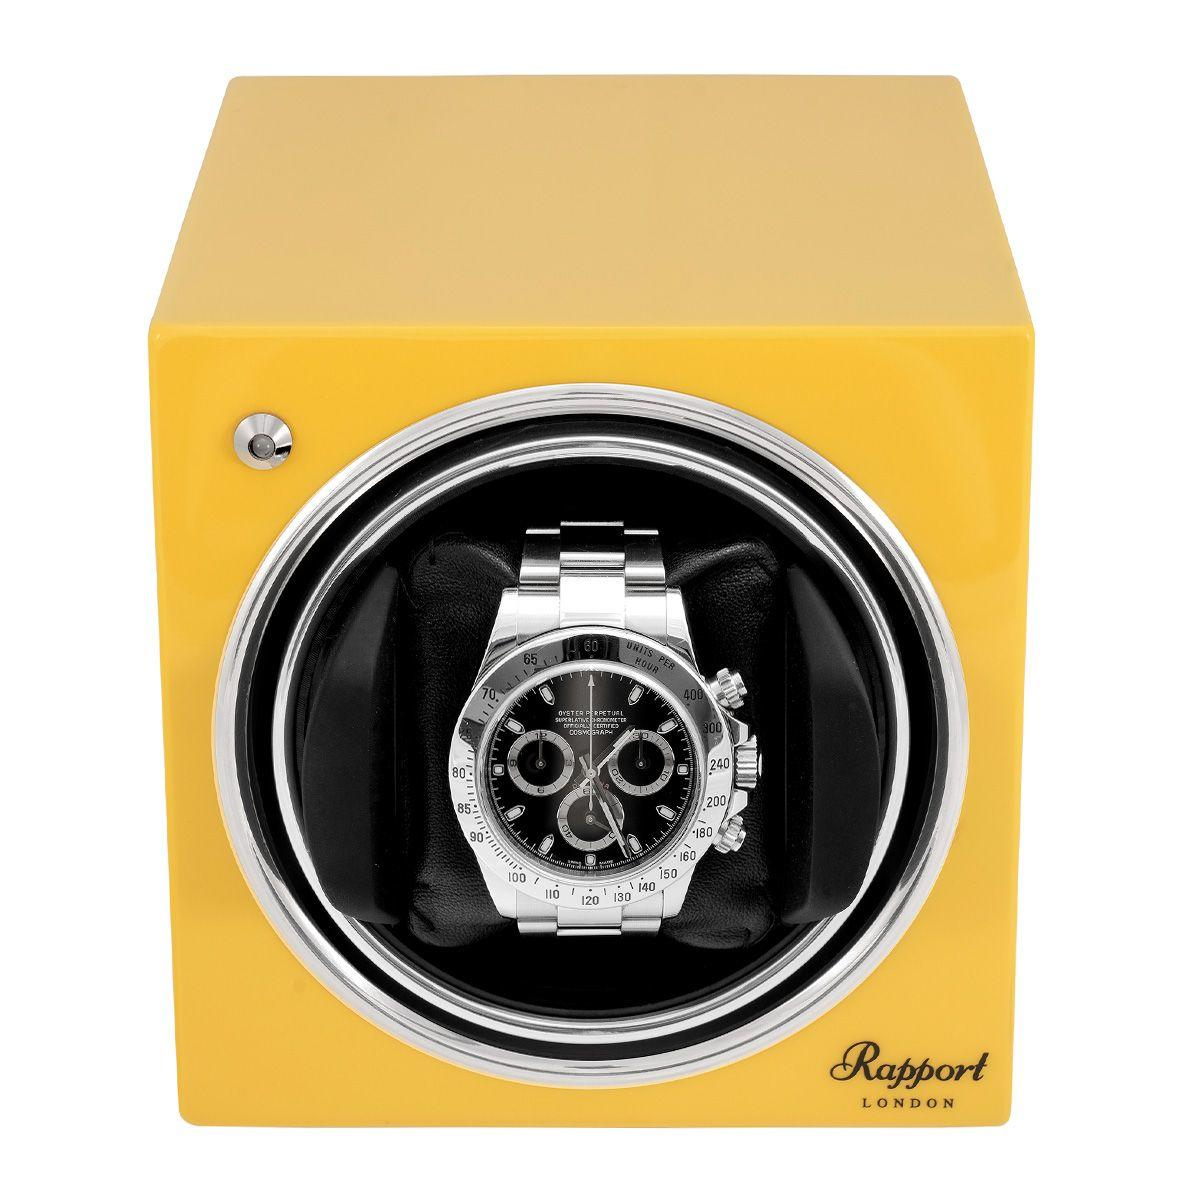 Rapport Evo Cube Watch Winder